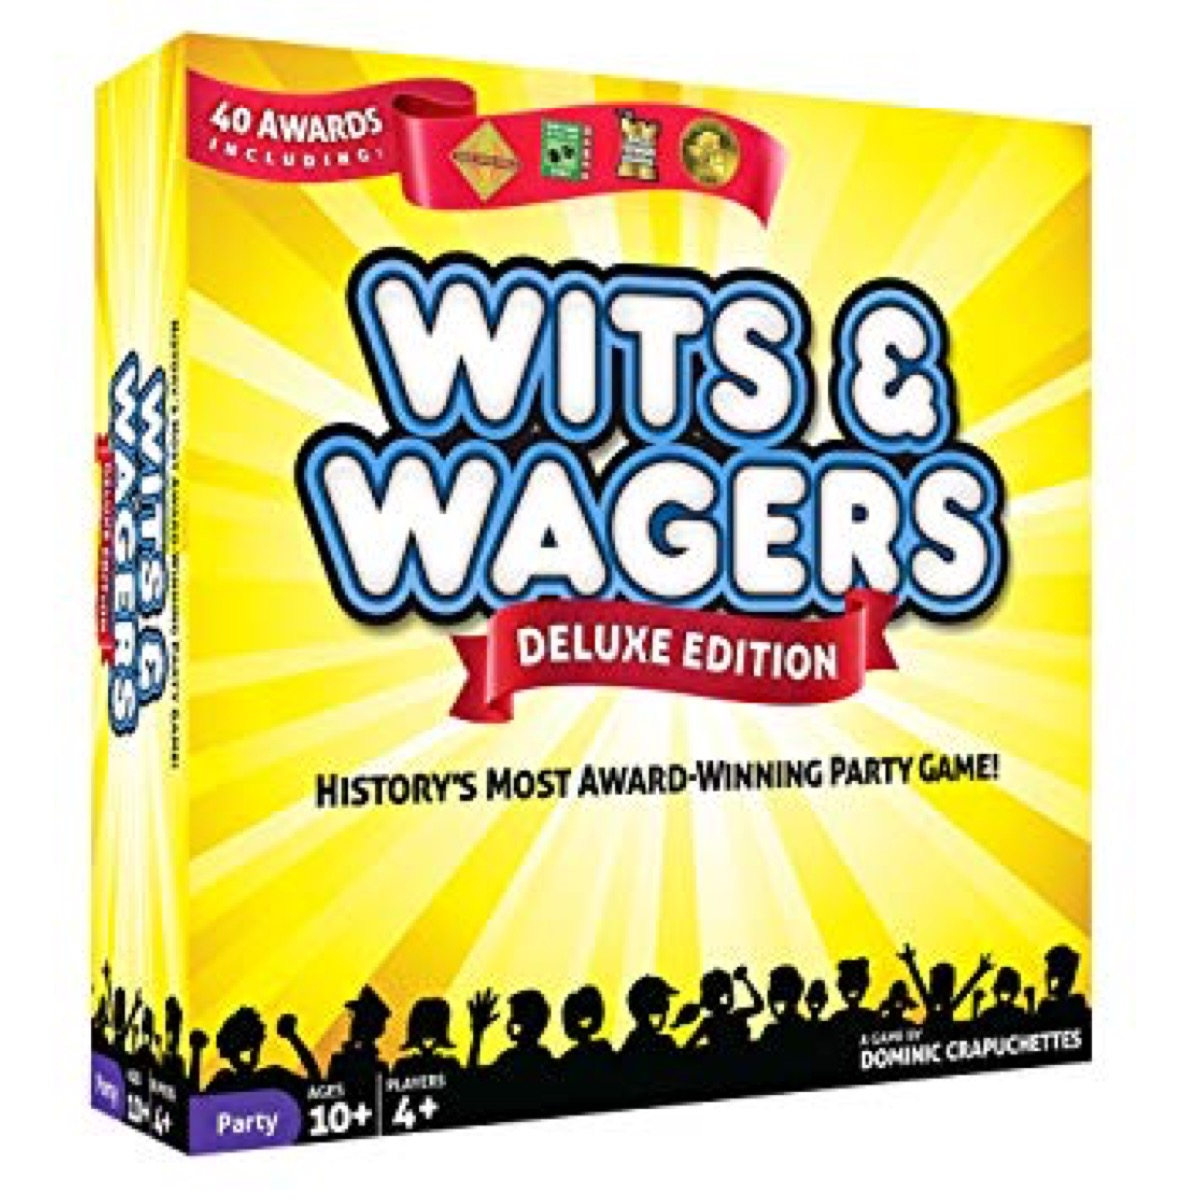 North Star Games Wits & Wagers Board Game | Deluxe Edition, Kid Friendly Party Game and Trivia from Amazon